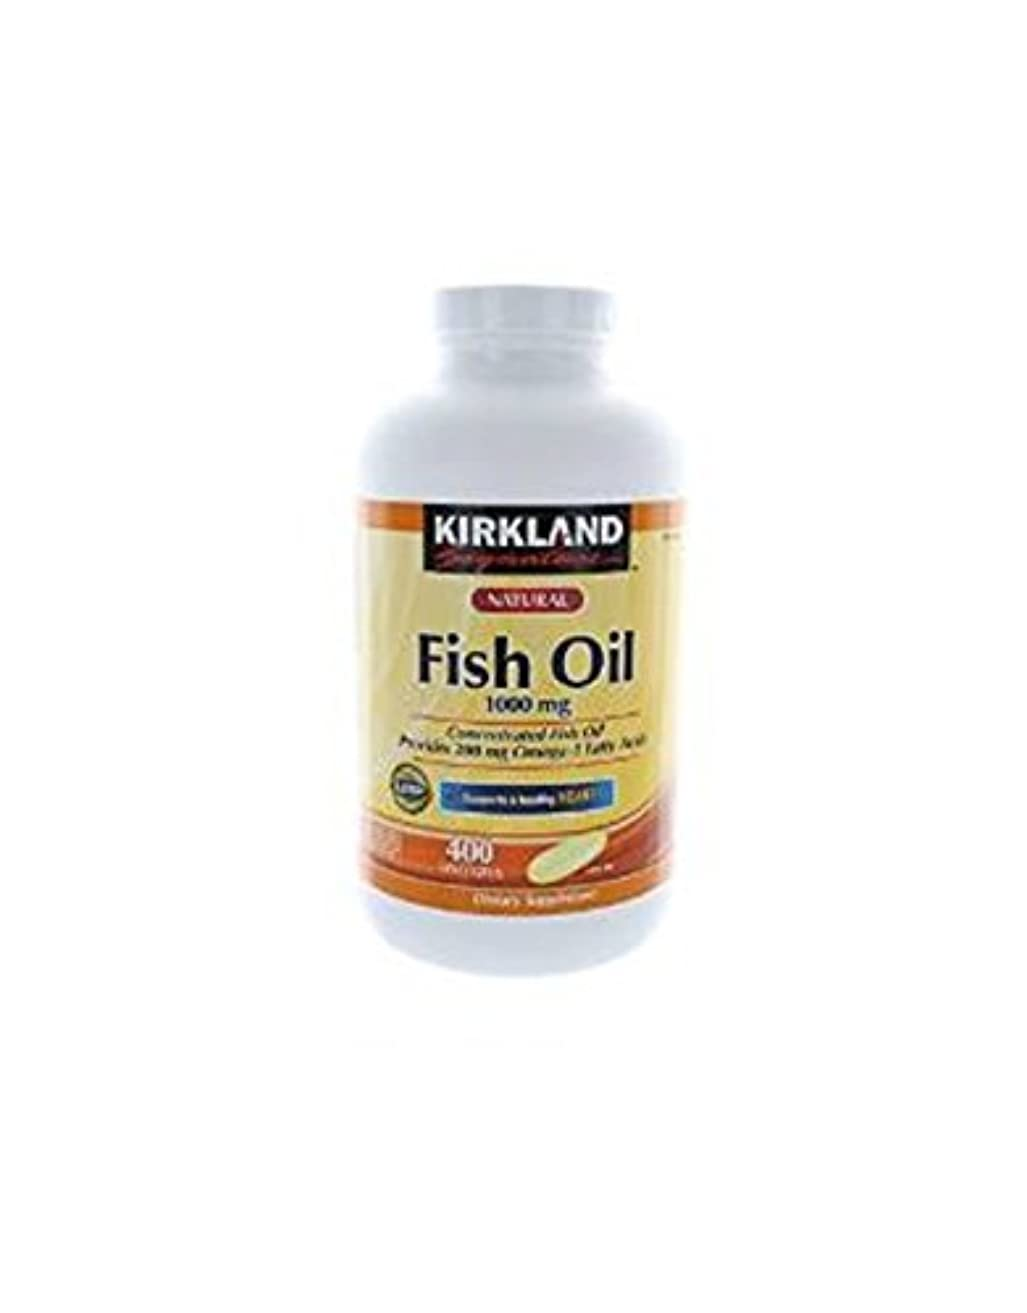 バイソンパンフレットカテゴリーKirkland Signature Omega-3 Fish Oil Concentrate, 400 Softgels, 1000 mg Fish Oil with 30% Omega-3s (300 mg) 1200...